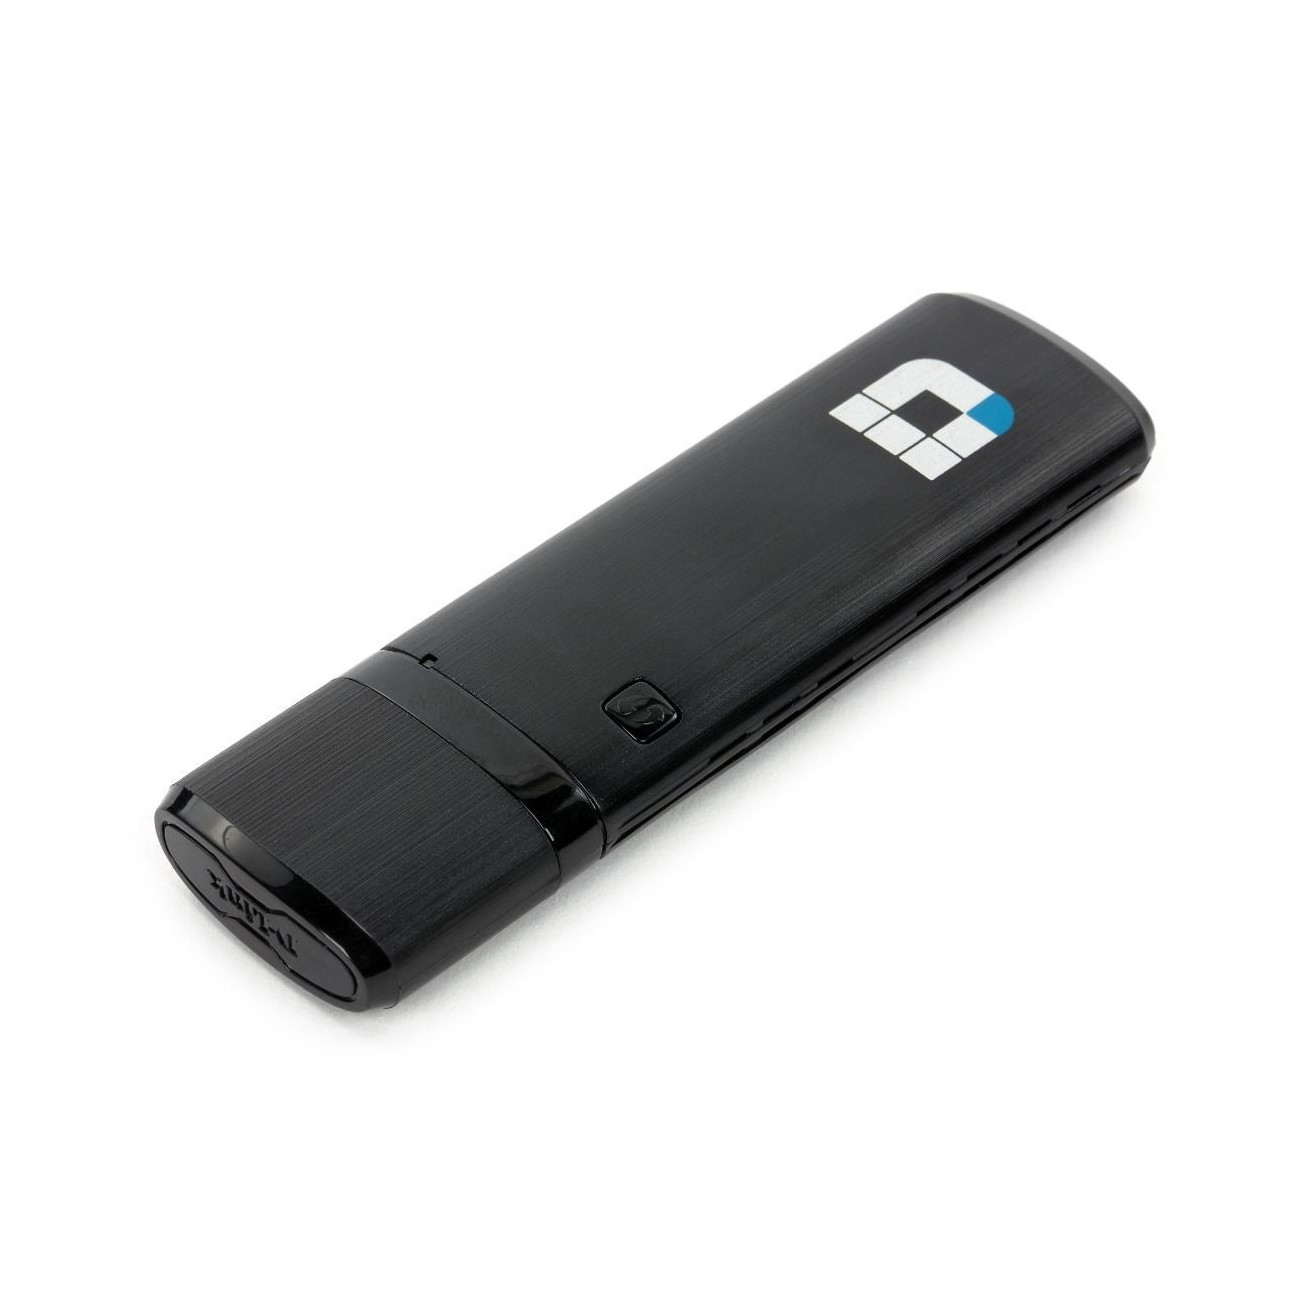 Adaptador Wireless Usb Dlink Dual Band Ac 1300 Mbps Dwa-182